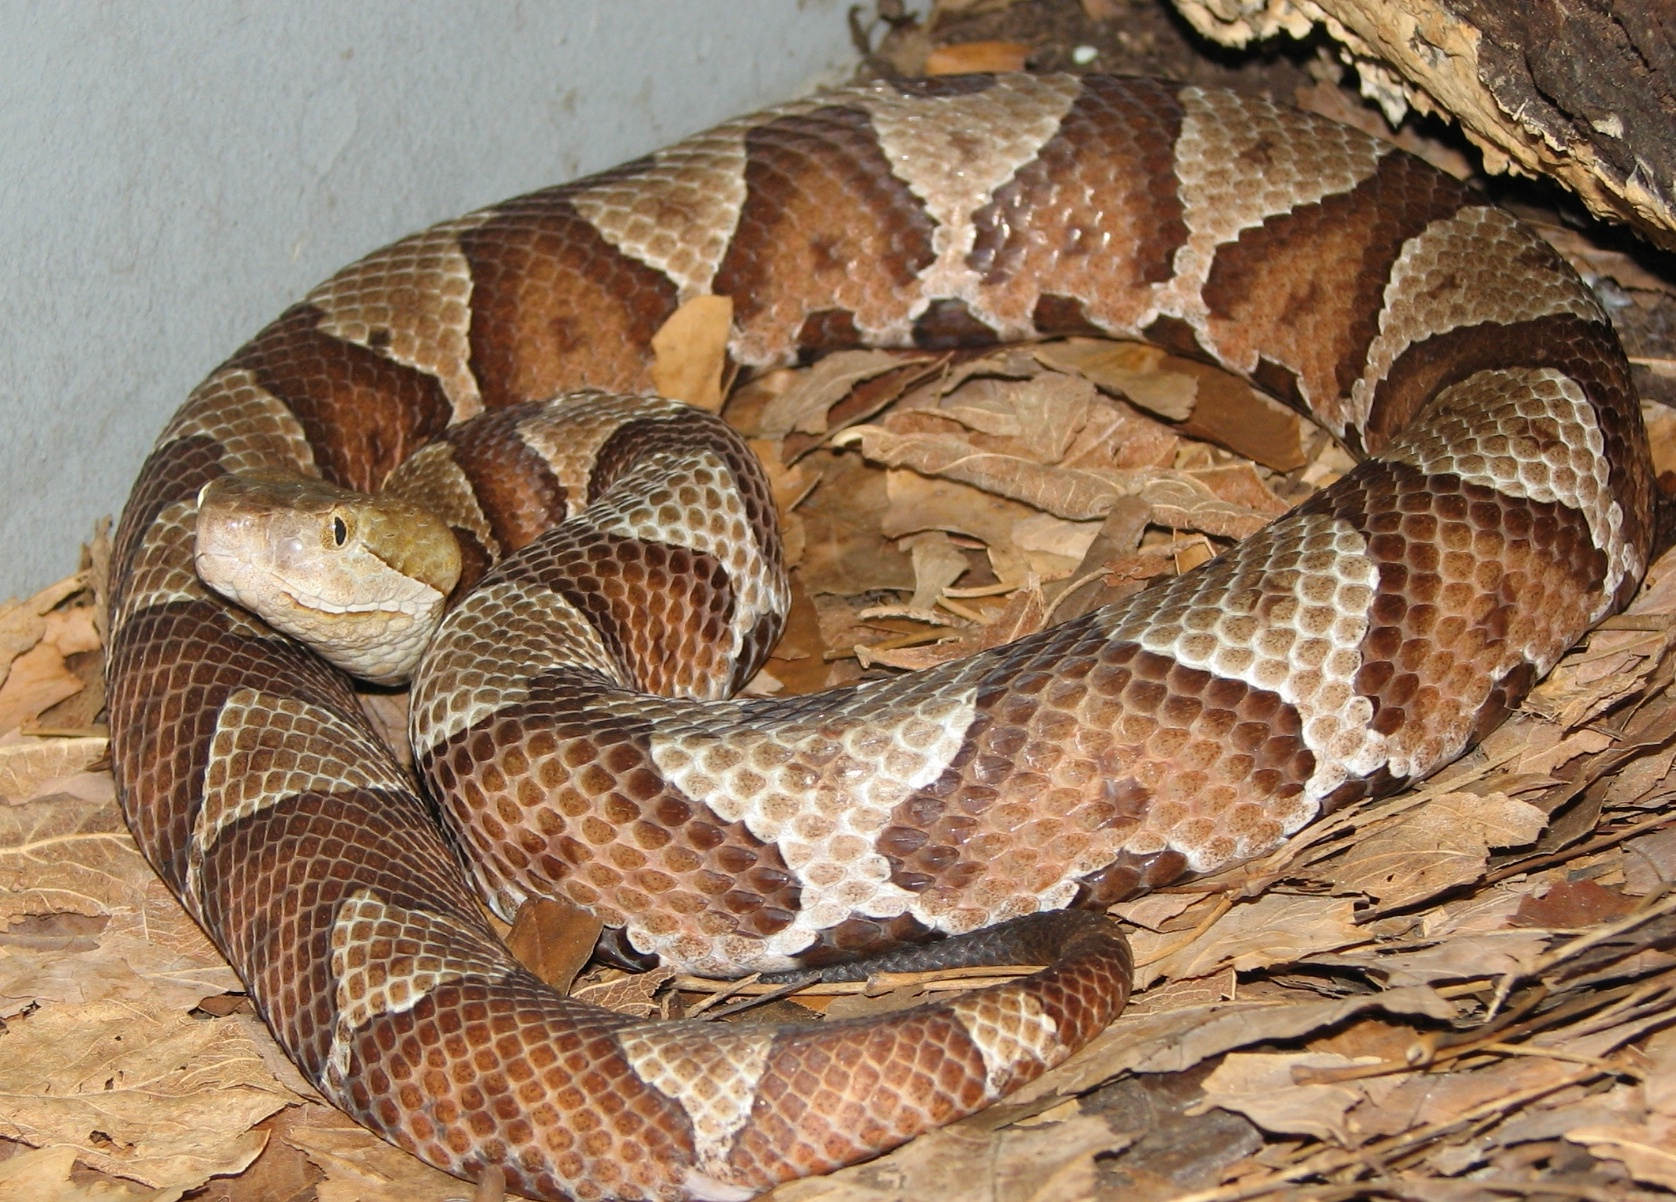 Kentucky's Venomous Snakes | Snakes and Spiders